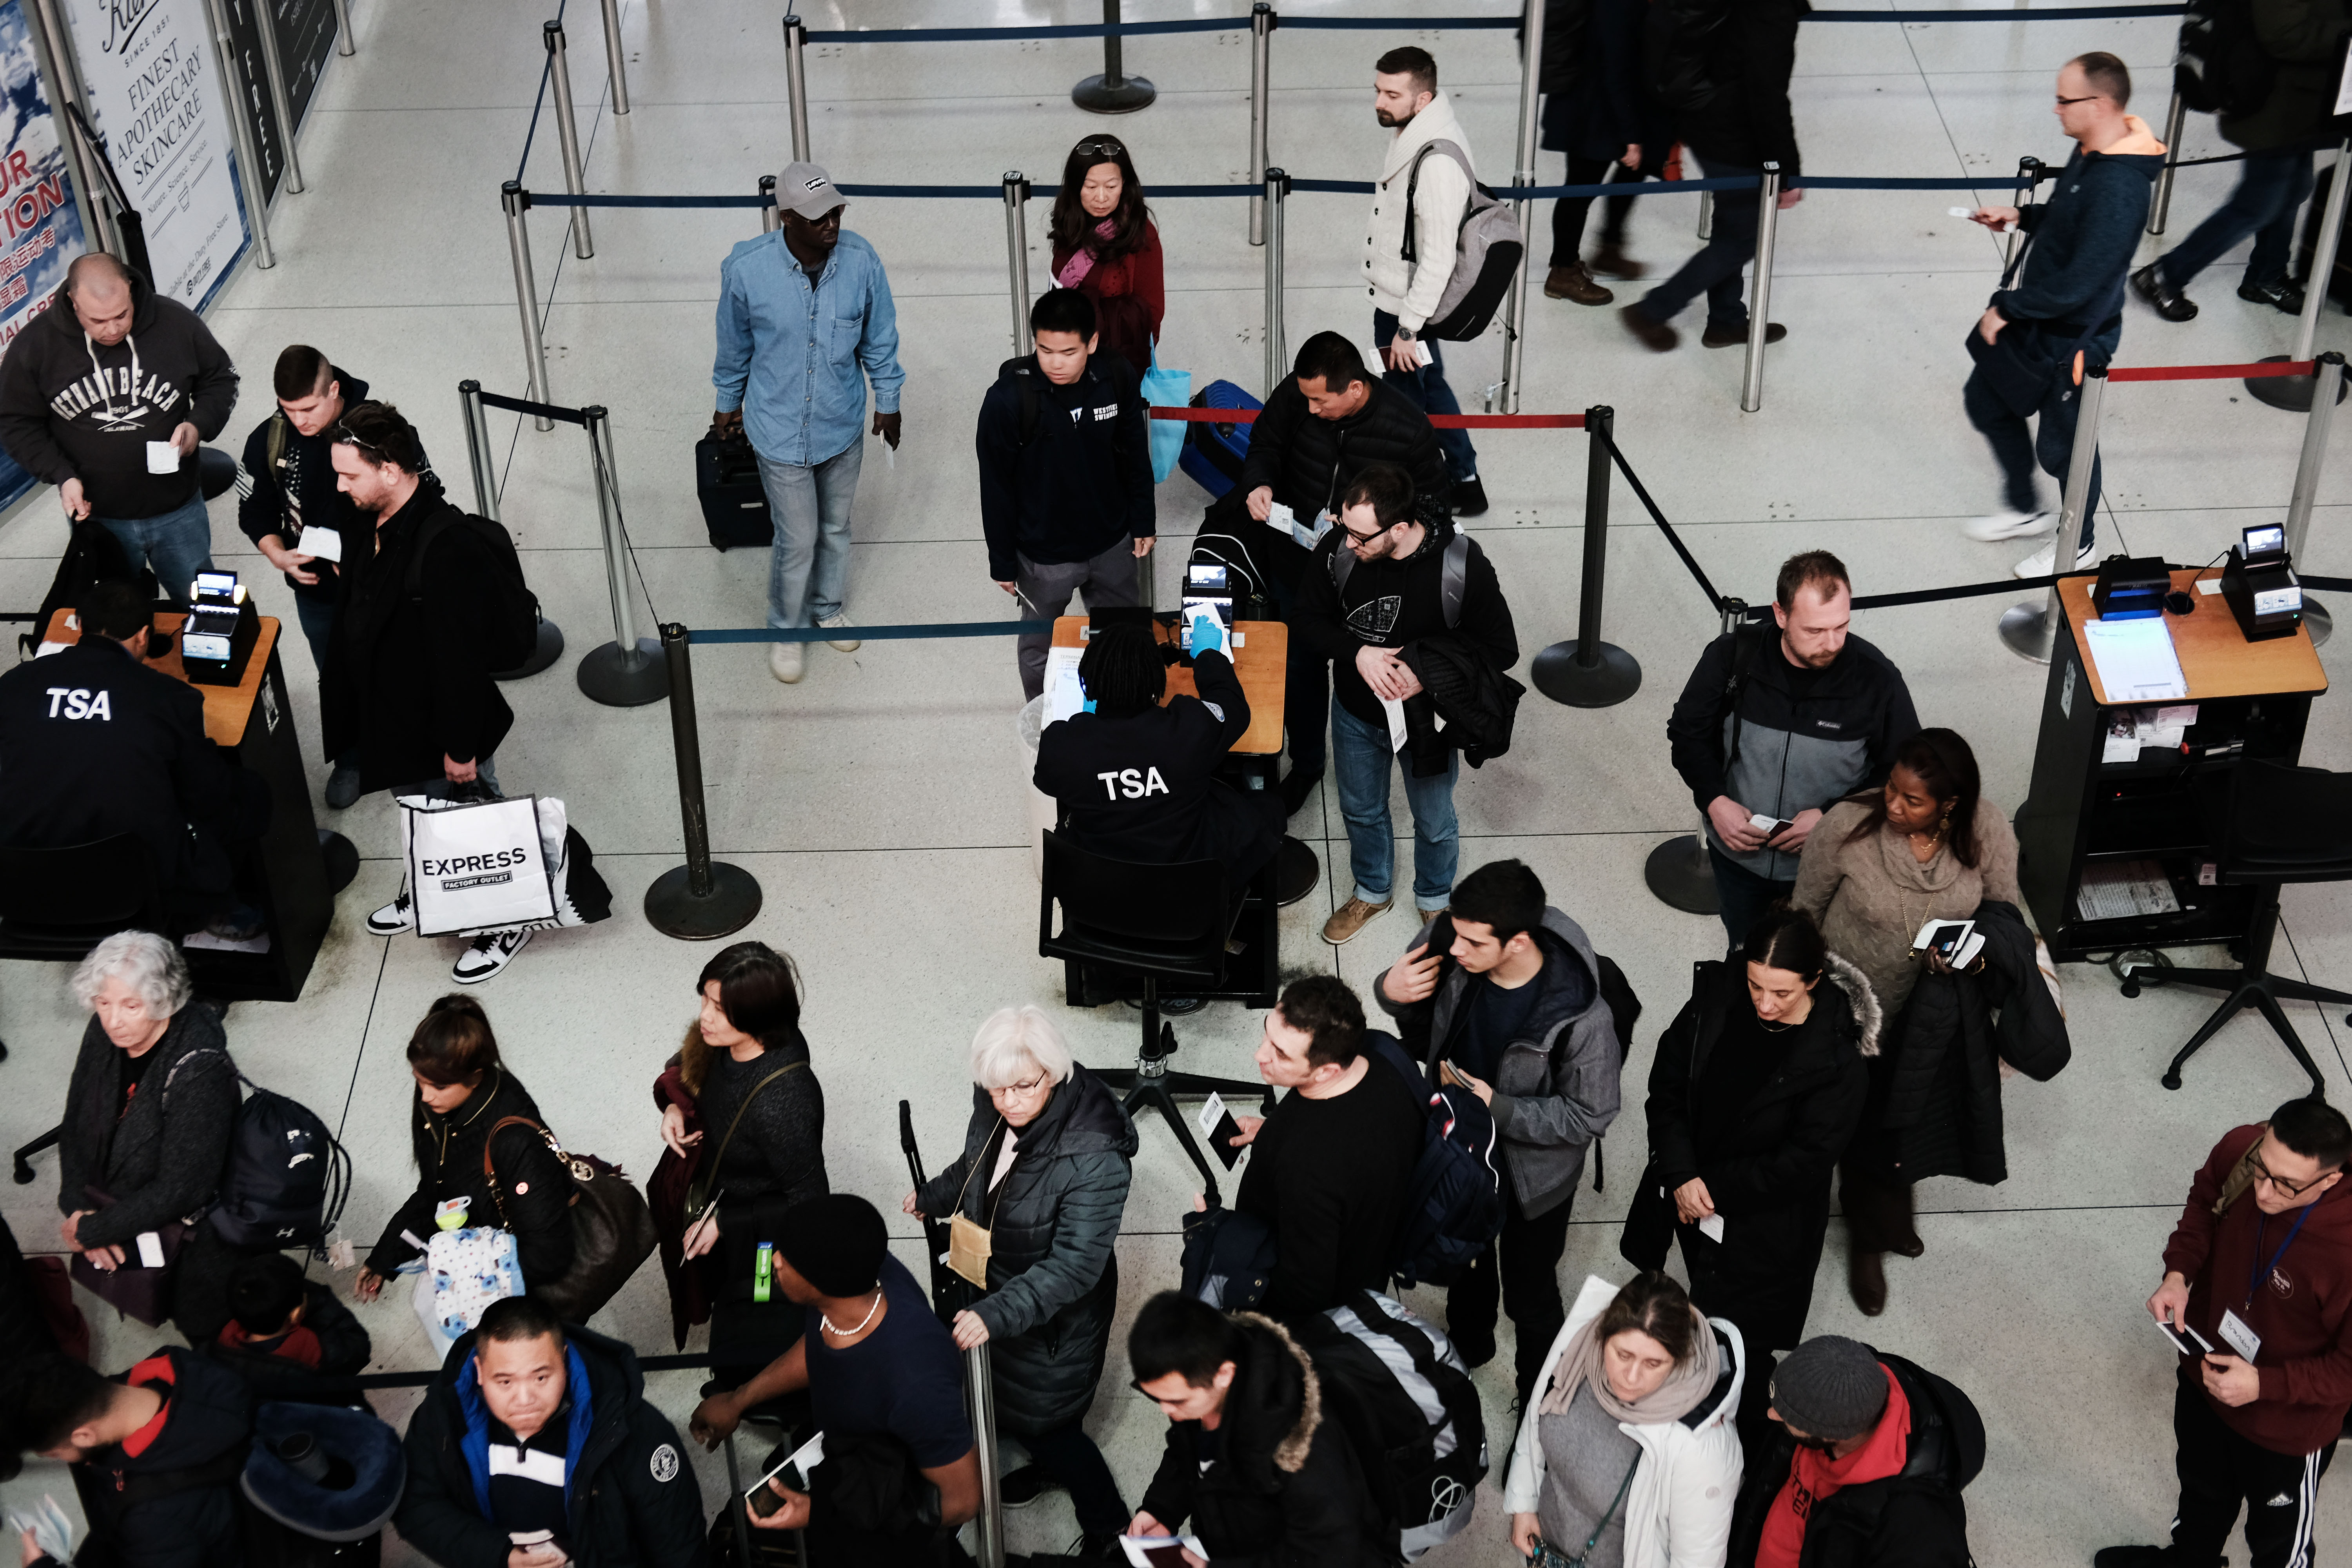 Passengers waiting for their luggage to be checked by TSA at the JFK Airport in New York City | Photo: Getty Images